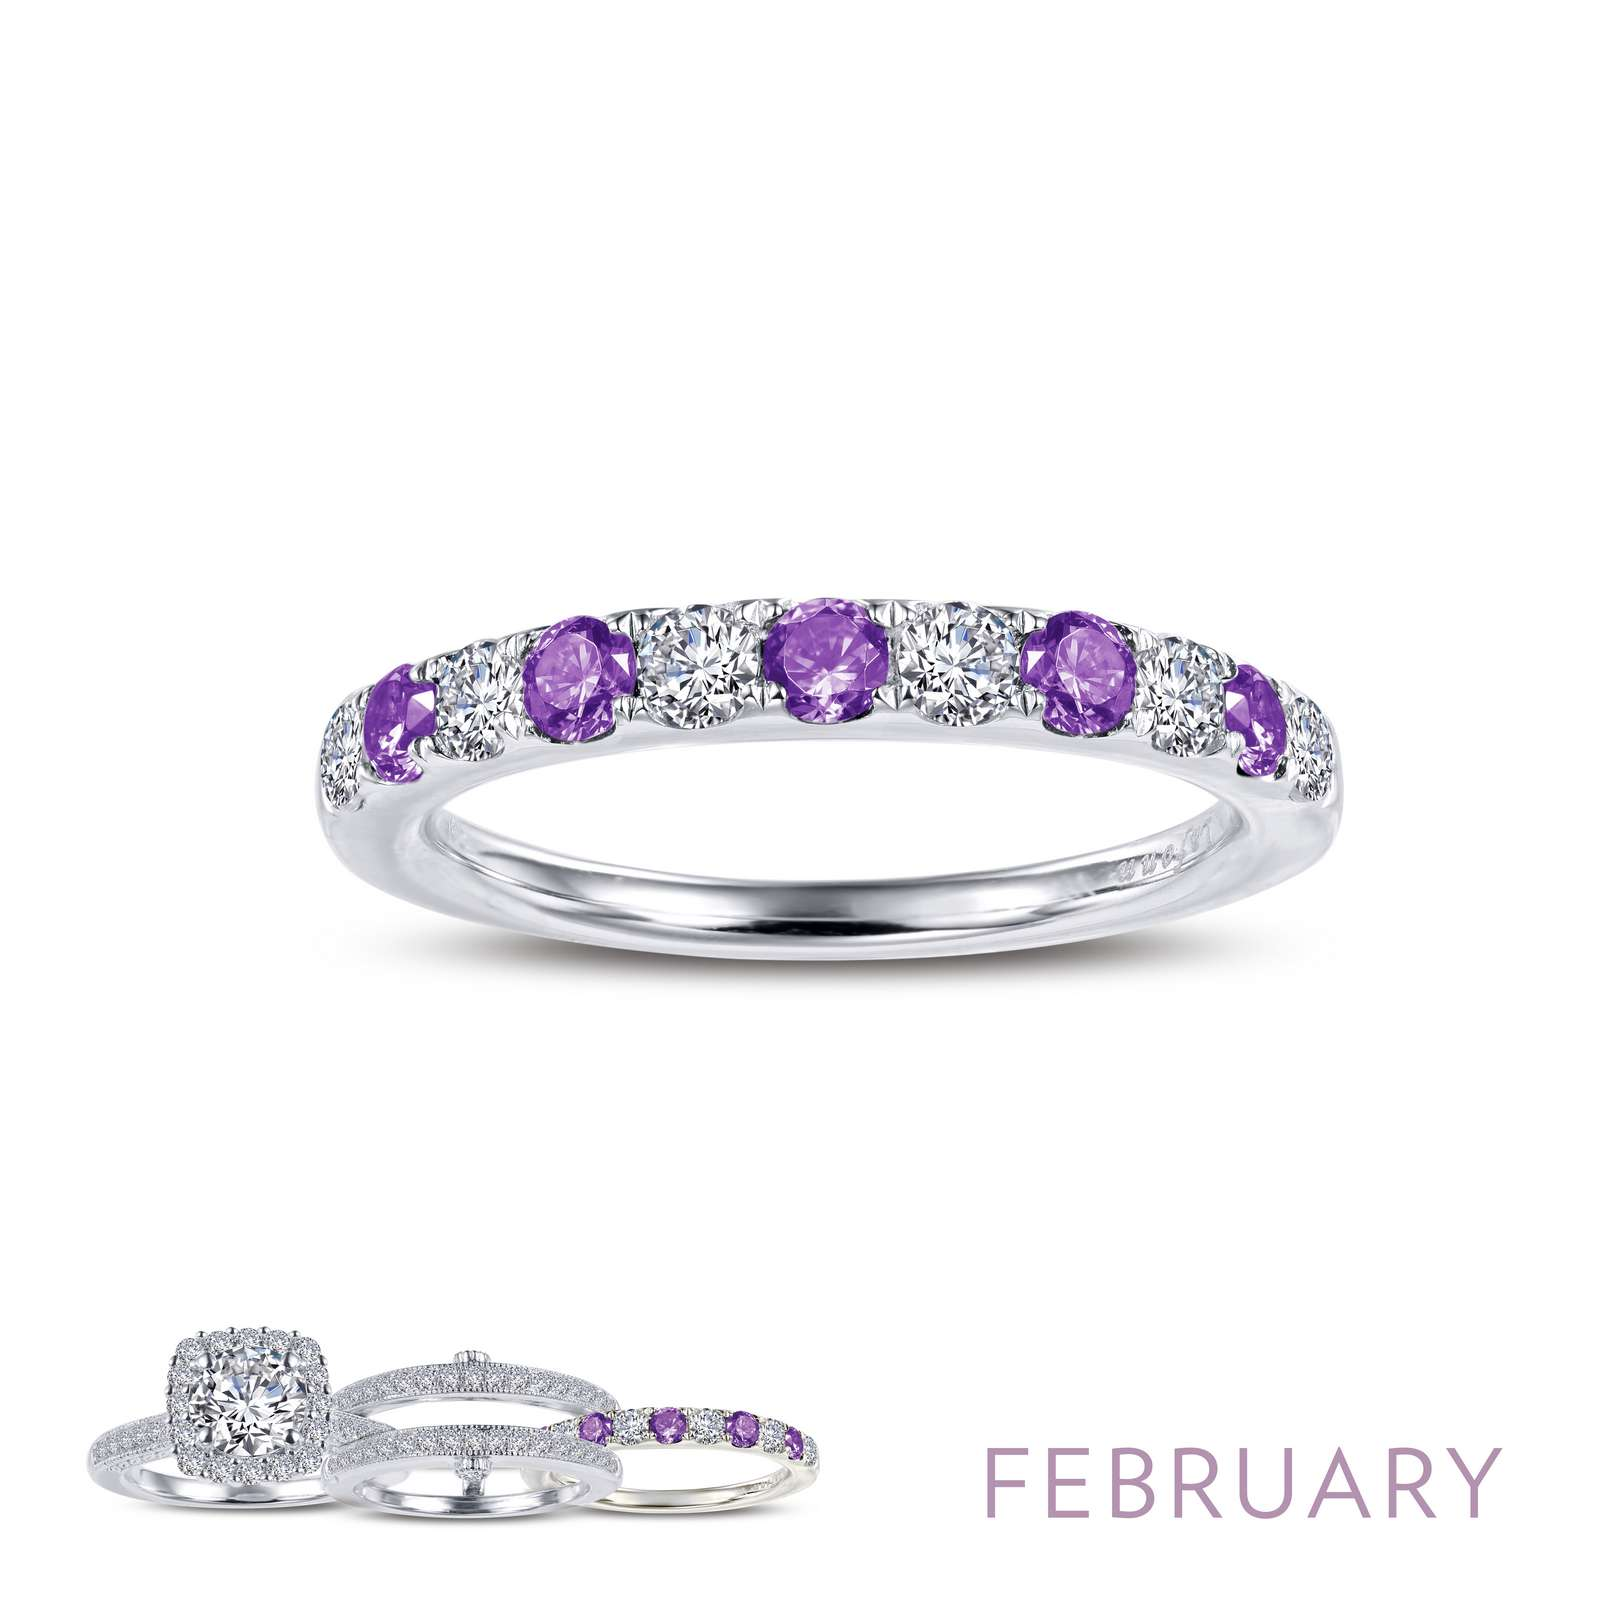 Birthstone FEBRUARY Platinum Ring by Lafonn